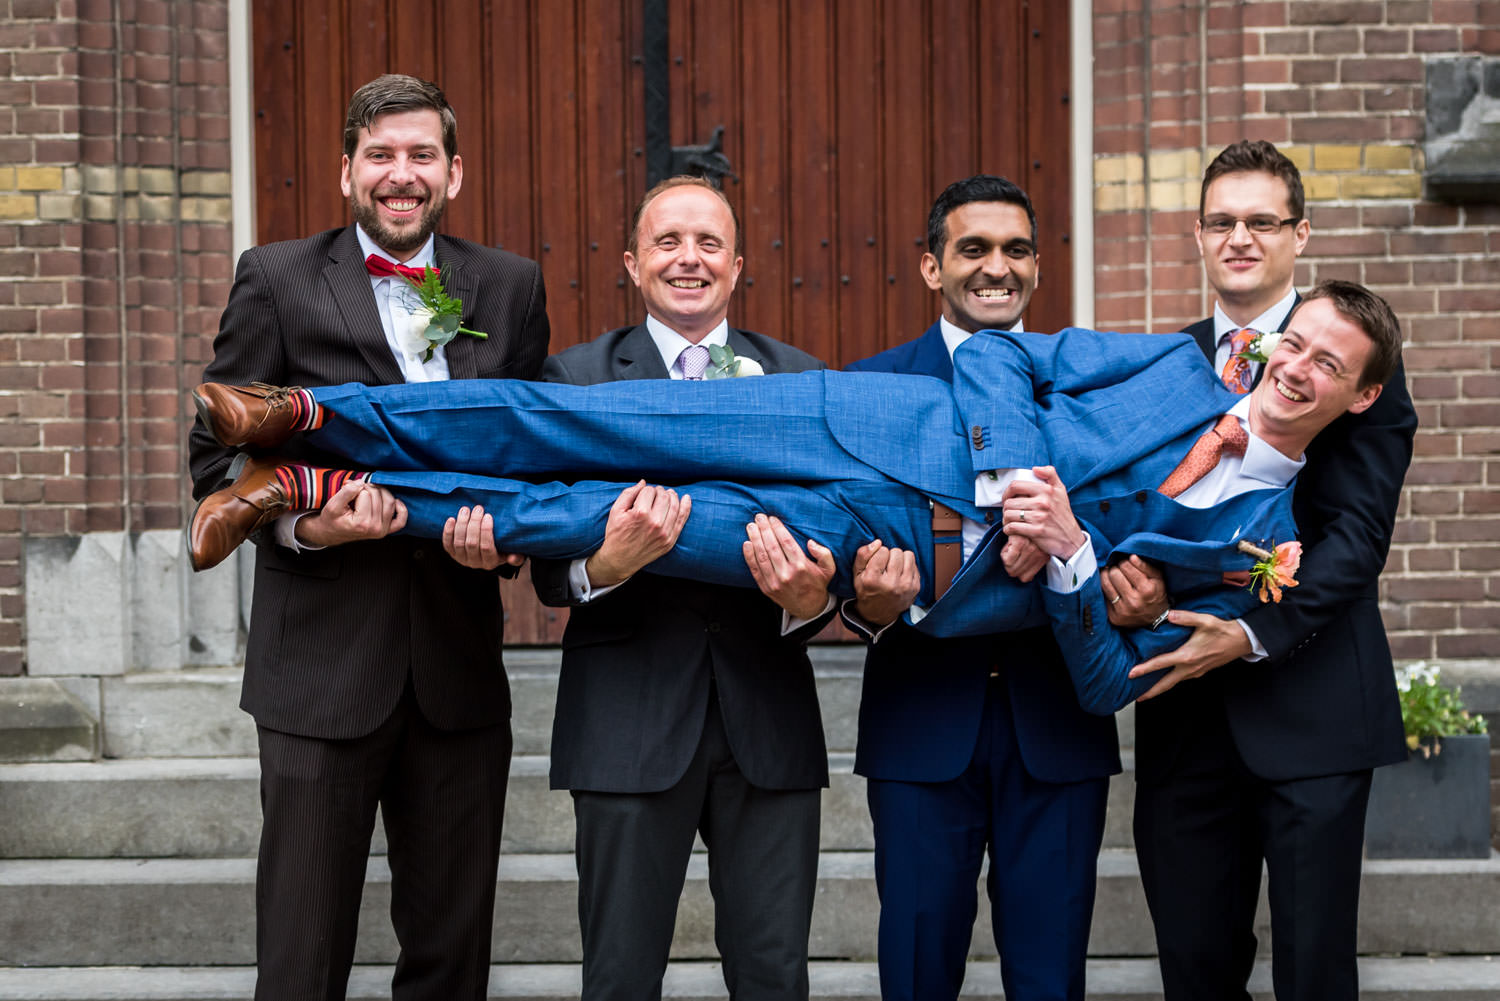 groom with his friends and best men